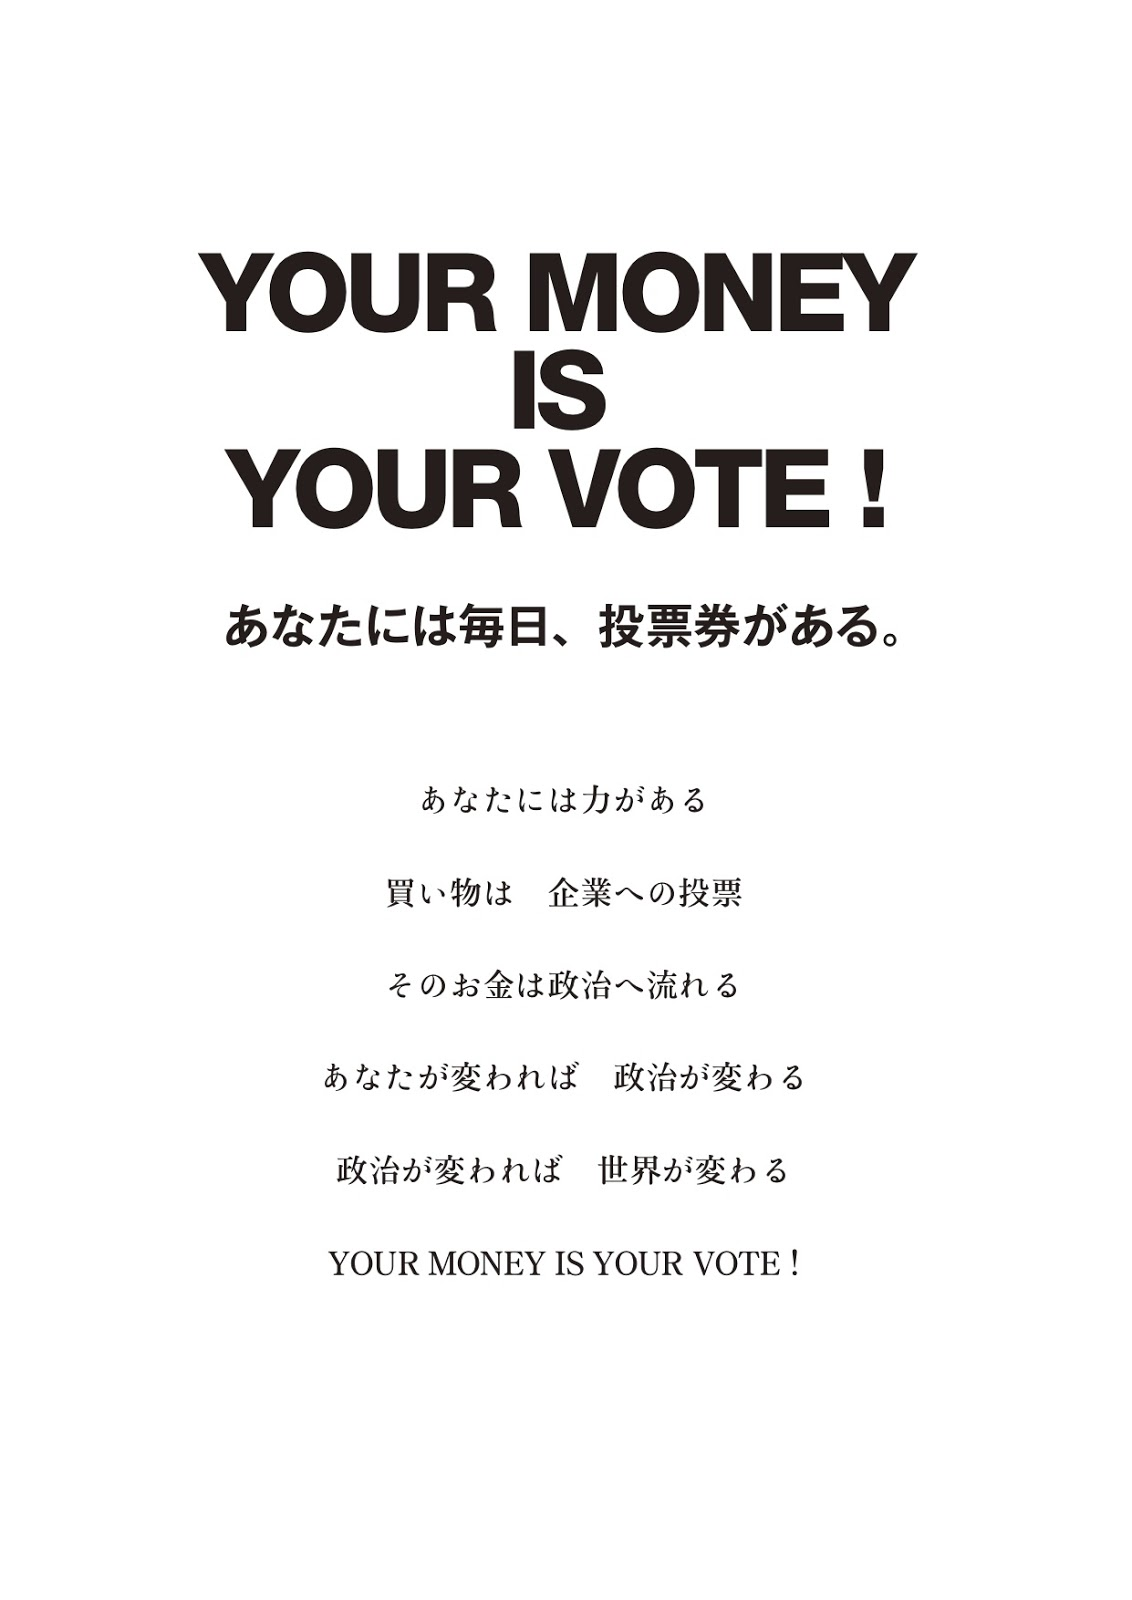 YOUR MONEY IS YOUR VOTE!